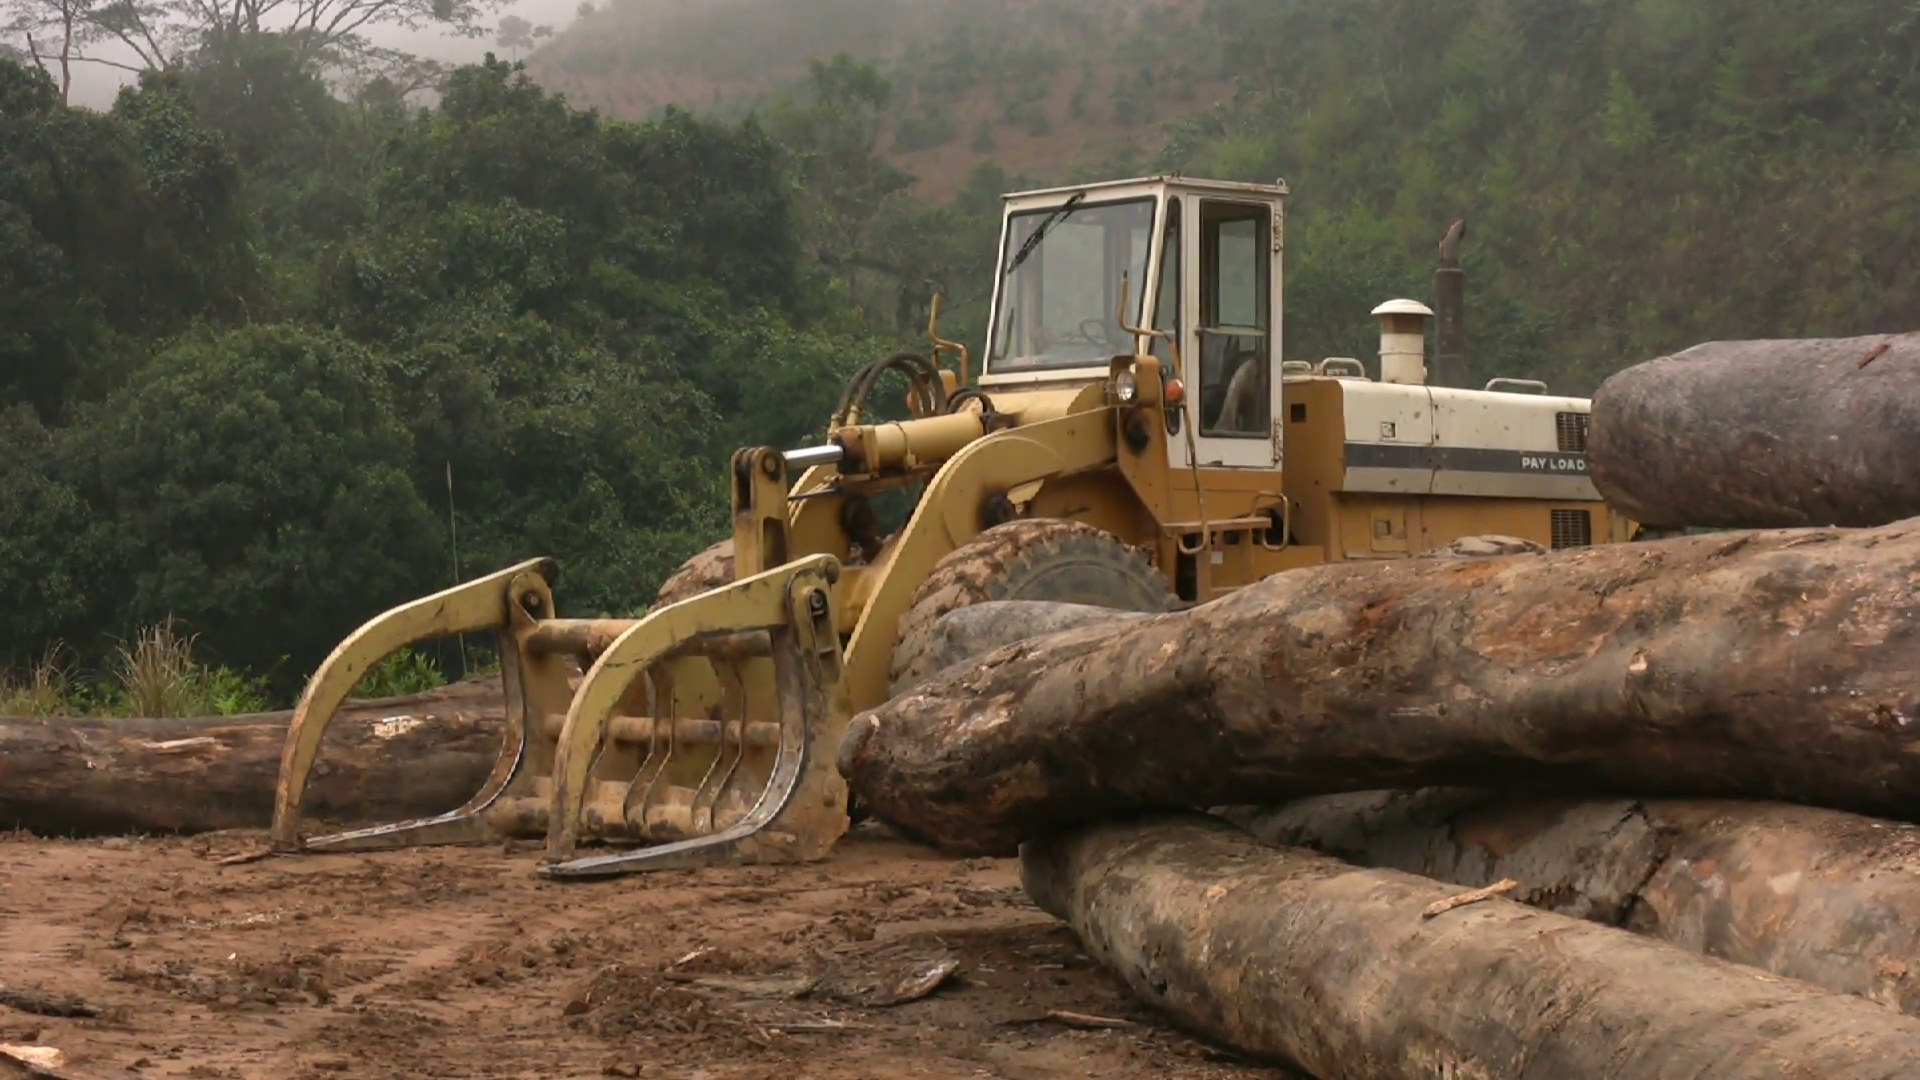 rainforest-logging-industry-deforestation-jungle-forest-tropical-logs-vietnam_htr4rl2x__F0010.png